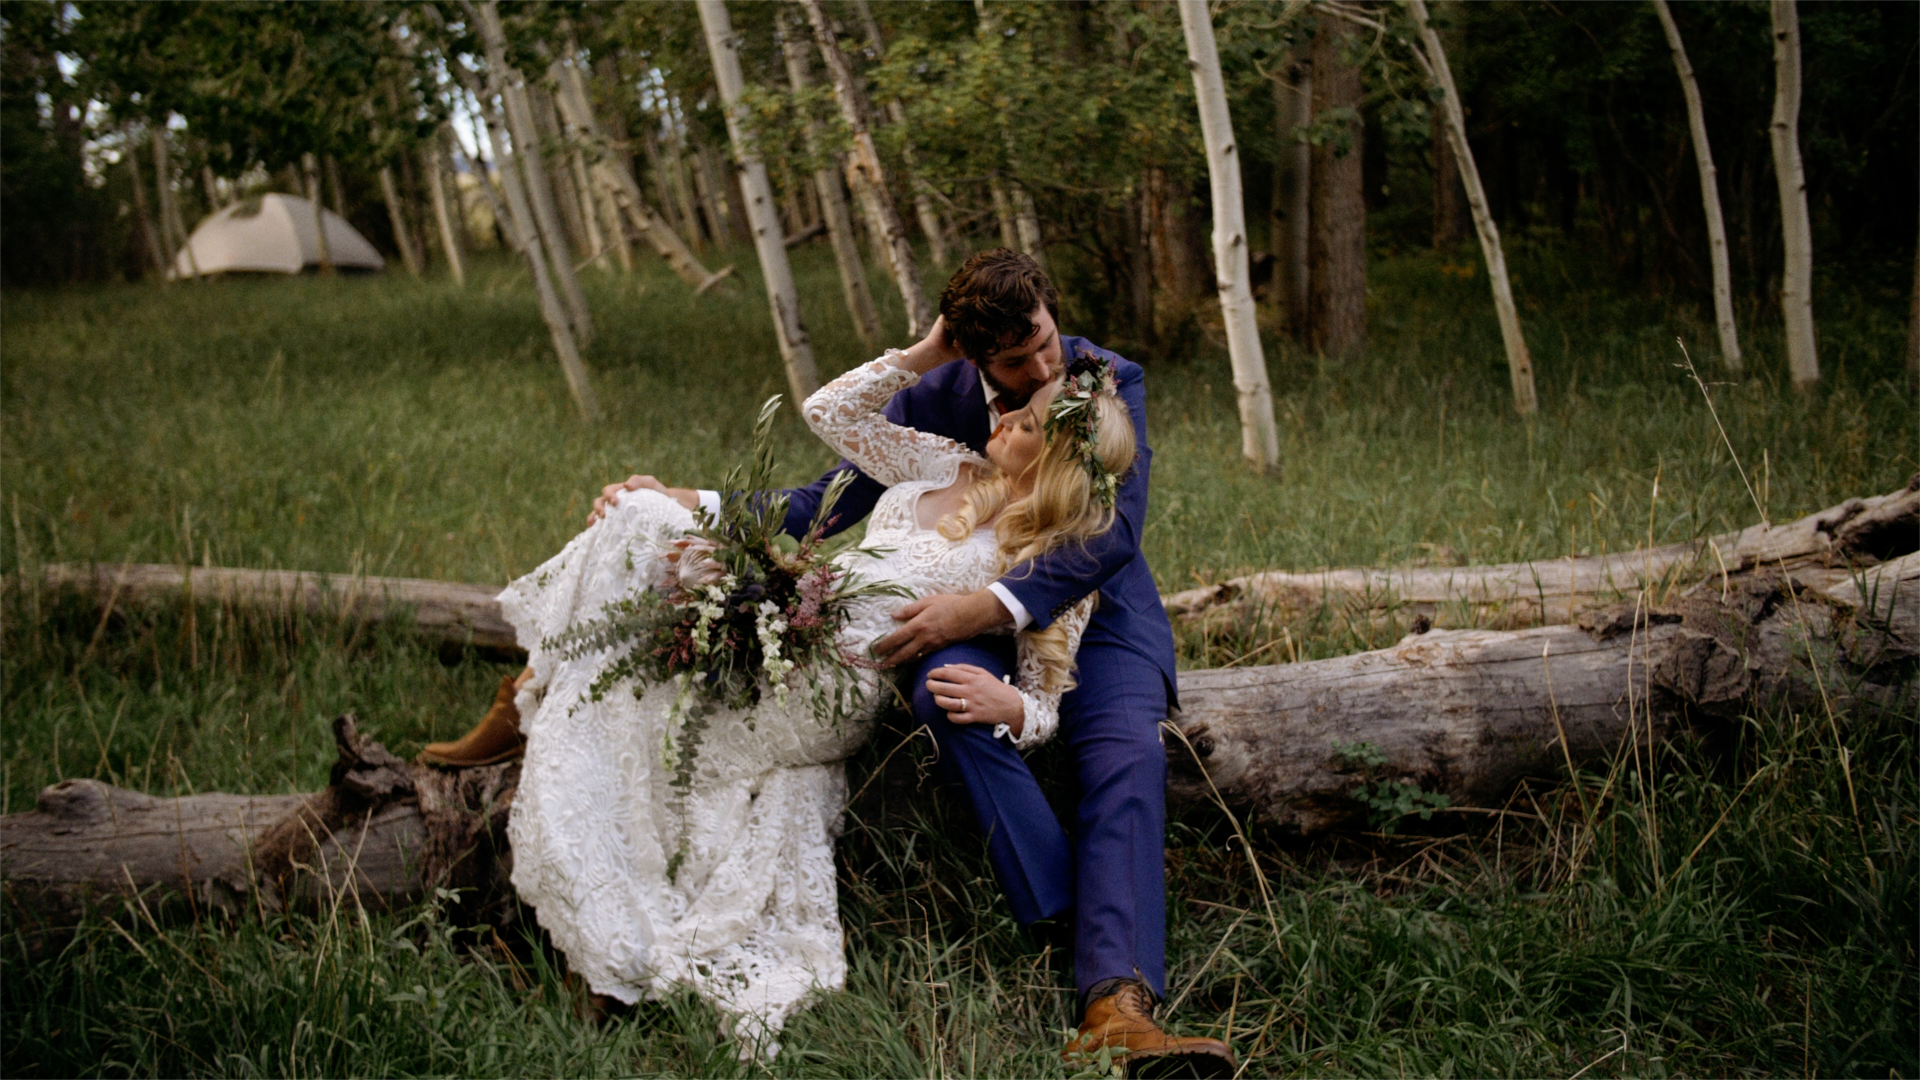 Taylor + Tellkamp | Westcliffe, Colorado | The Groom's Family Westcliffe Home